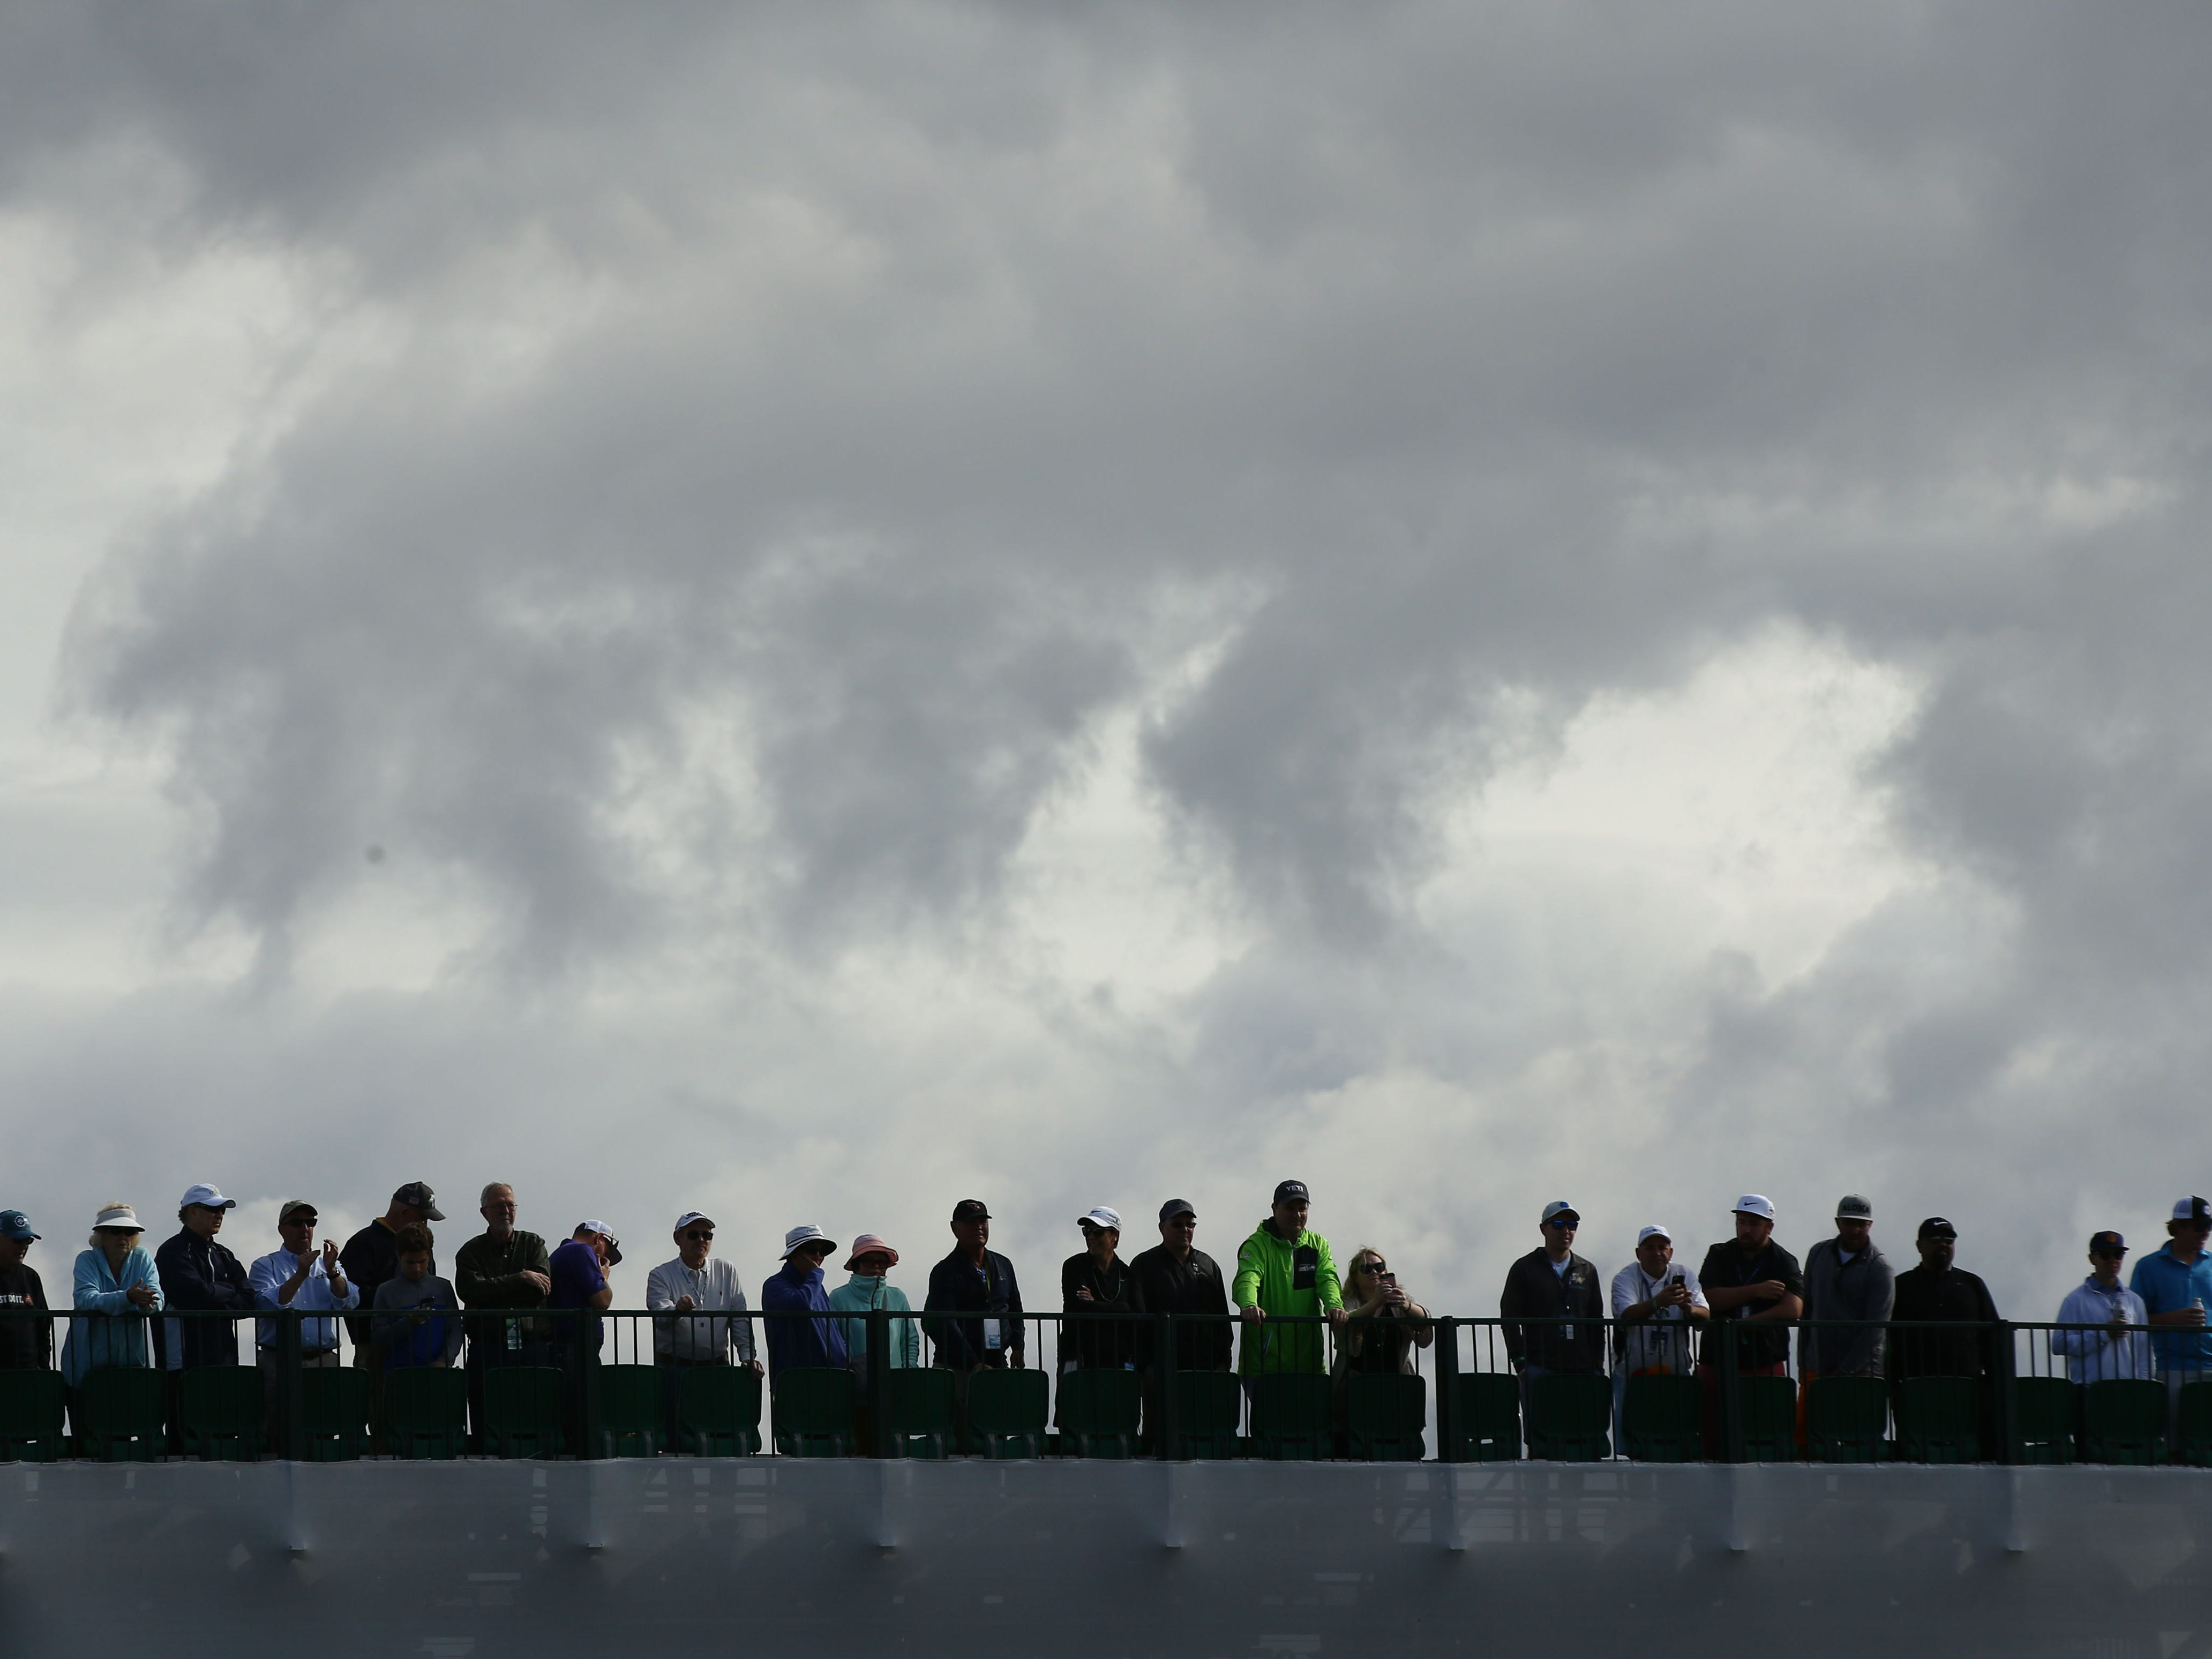 Spectators watch Rickie Fowler putt on the 2nd hole during third round action on Feb. 2 during the Waste Management Phoenix Open at the TPC Scottsdale Stadium Course.